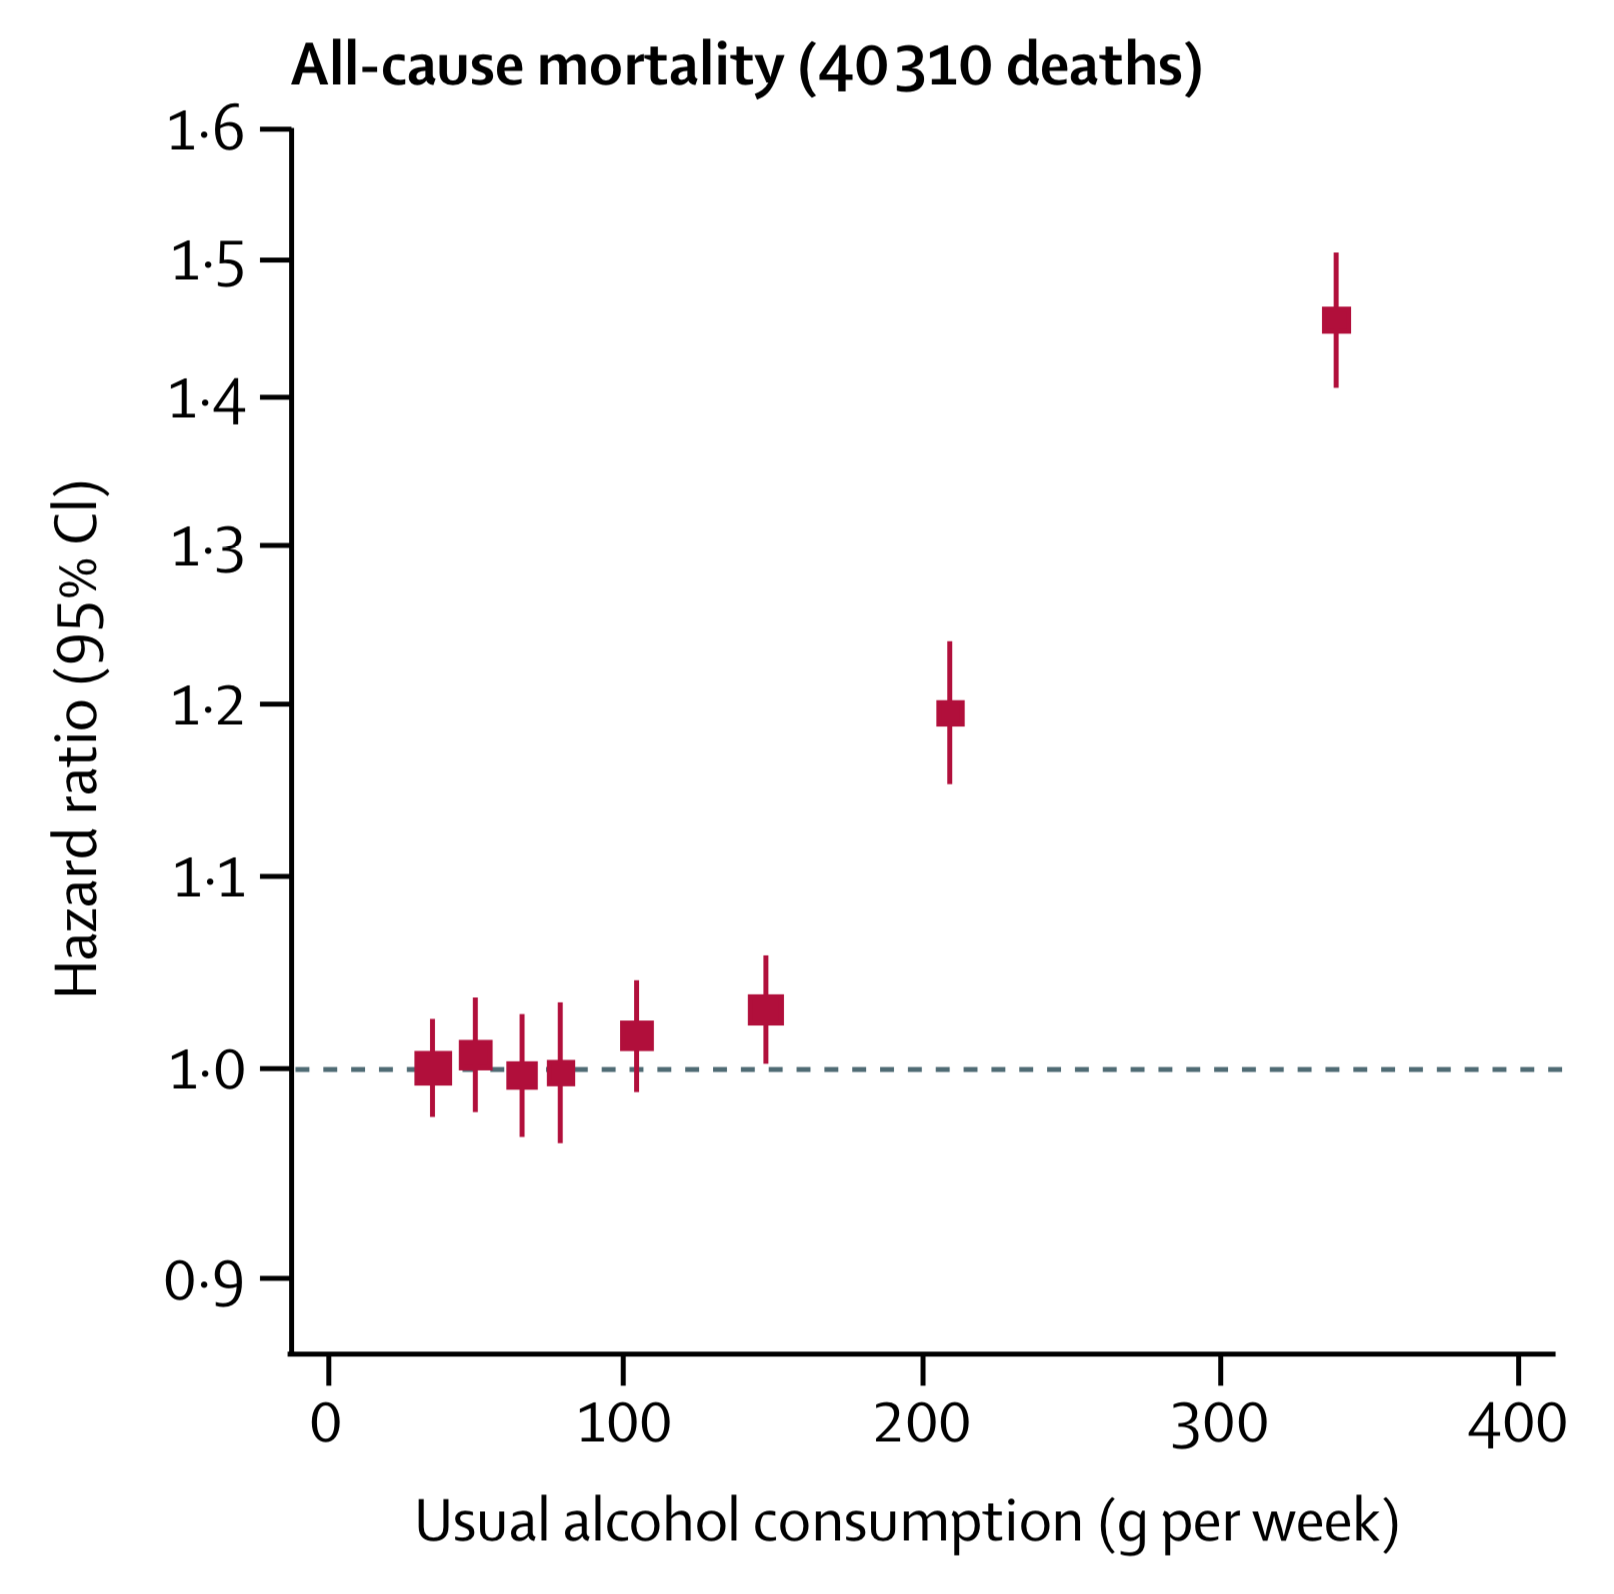 All-cause mortality risk has a positive, curvilinear association with alcohol assumption, i.e. mortality risk is lowest for 0-100g per week. Exceeding that, life expectancy at age 40 would be lower by 6 months for 100-200g per week, 1-2 years for 200-350g per week, and 4-5 years for >350g per week.